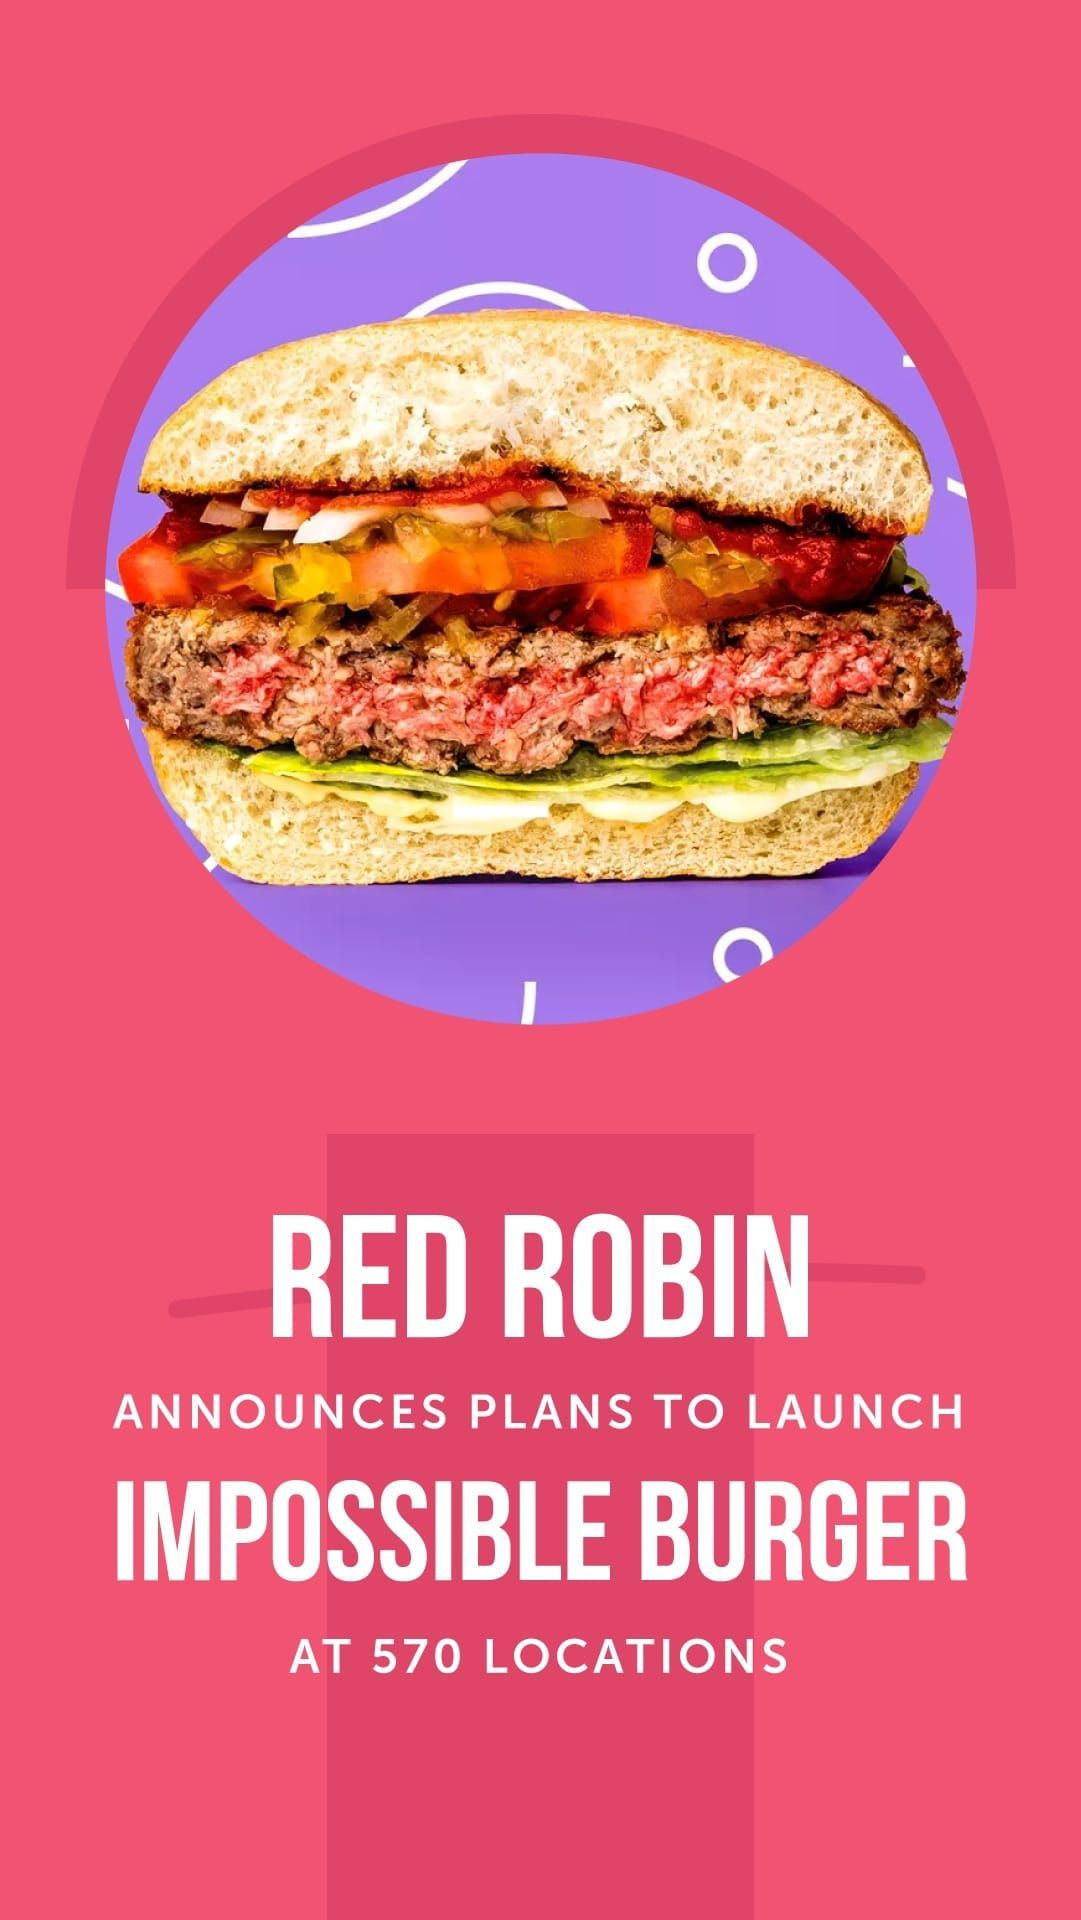 Red Robin Announces Plan To Launch Impossible Burger At 570